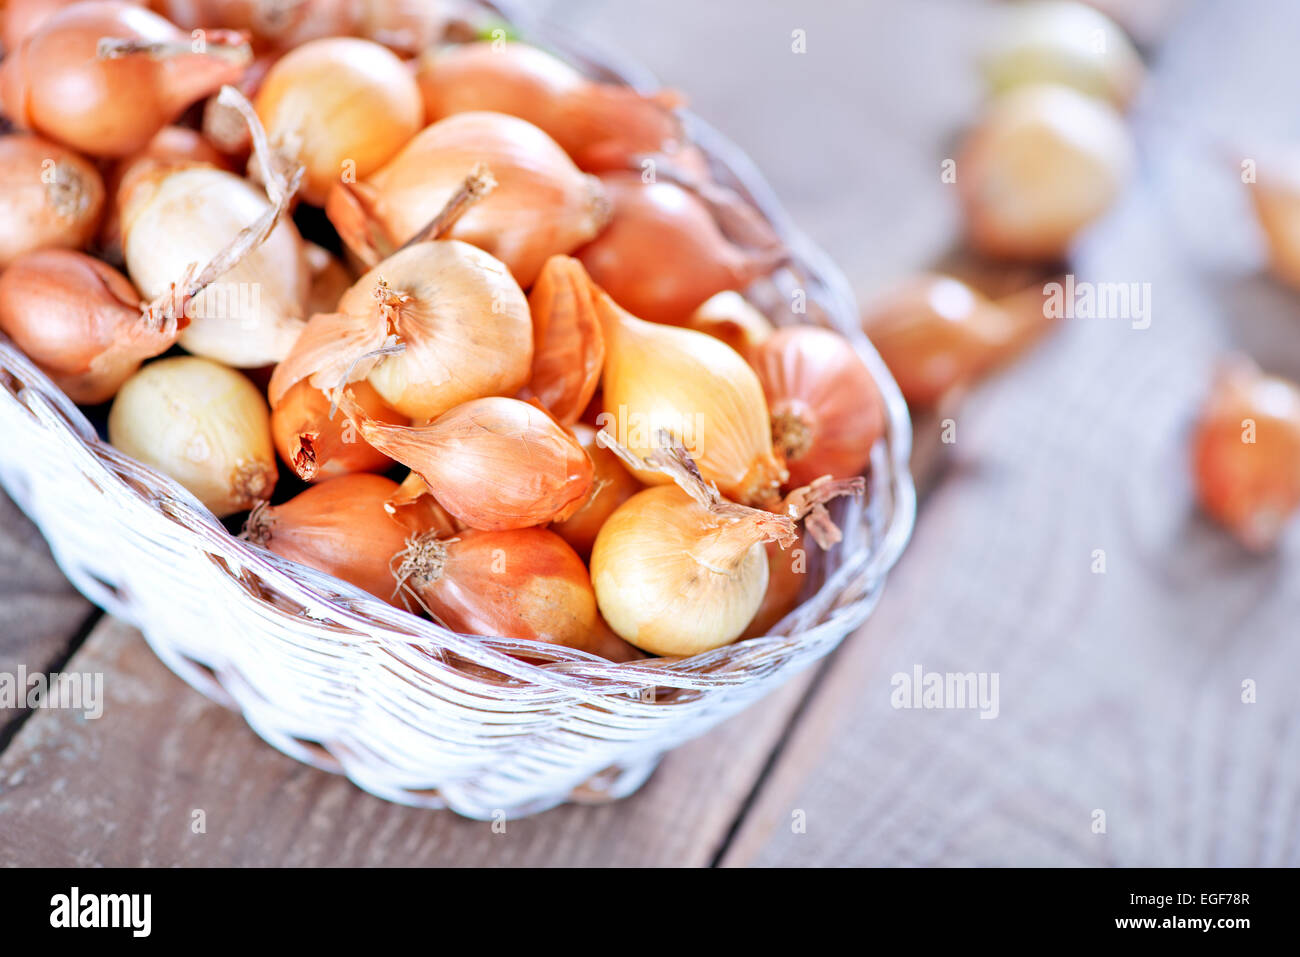 raw onion in basket and on a table - Stock Image